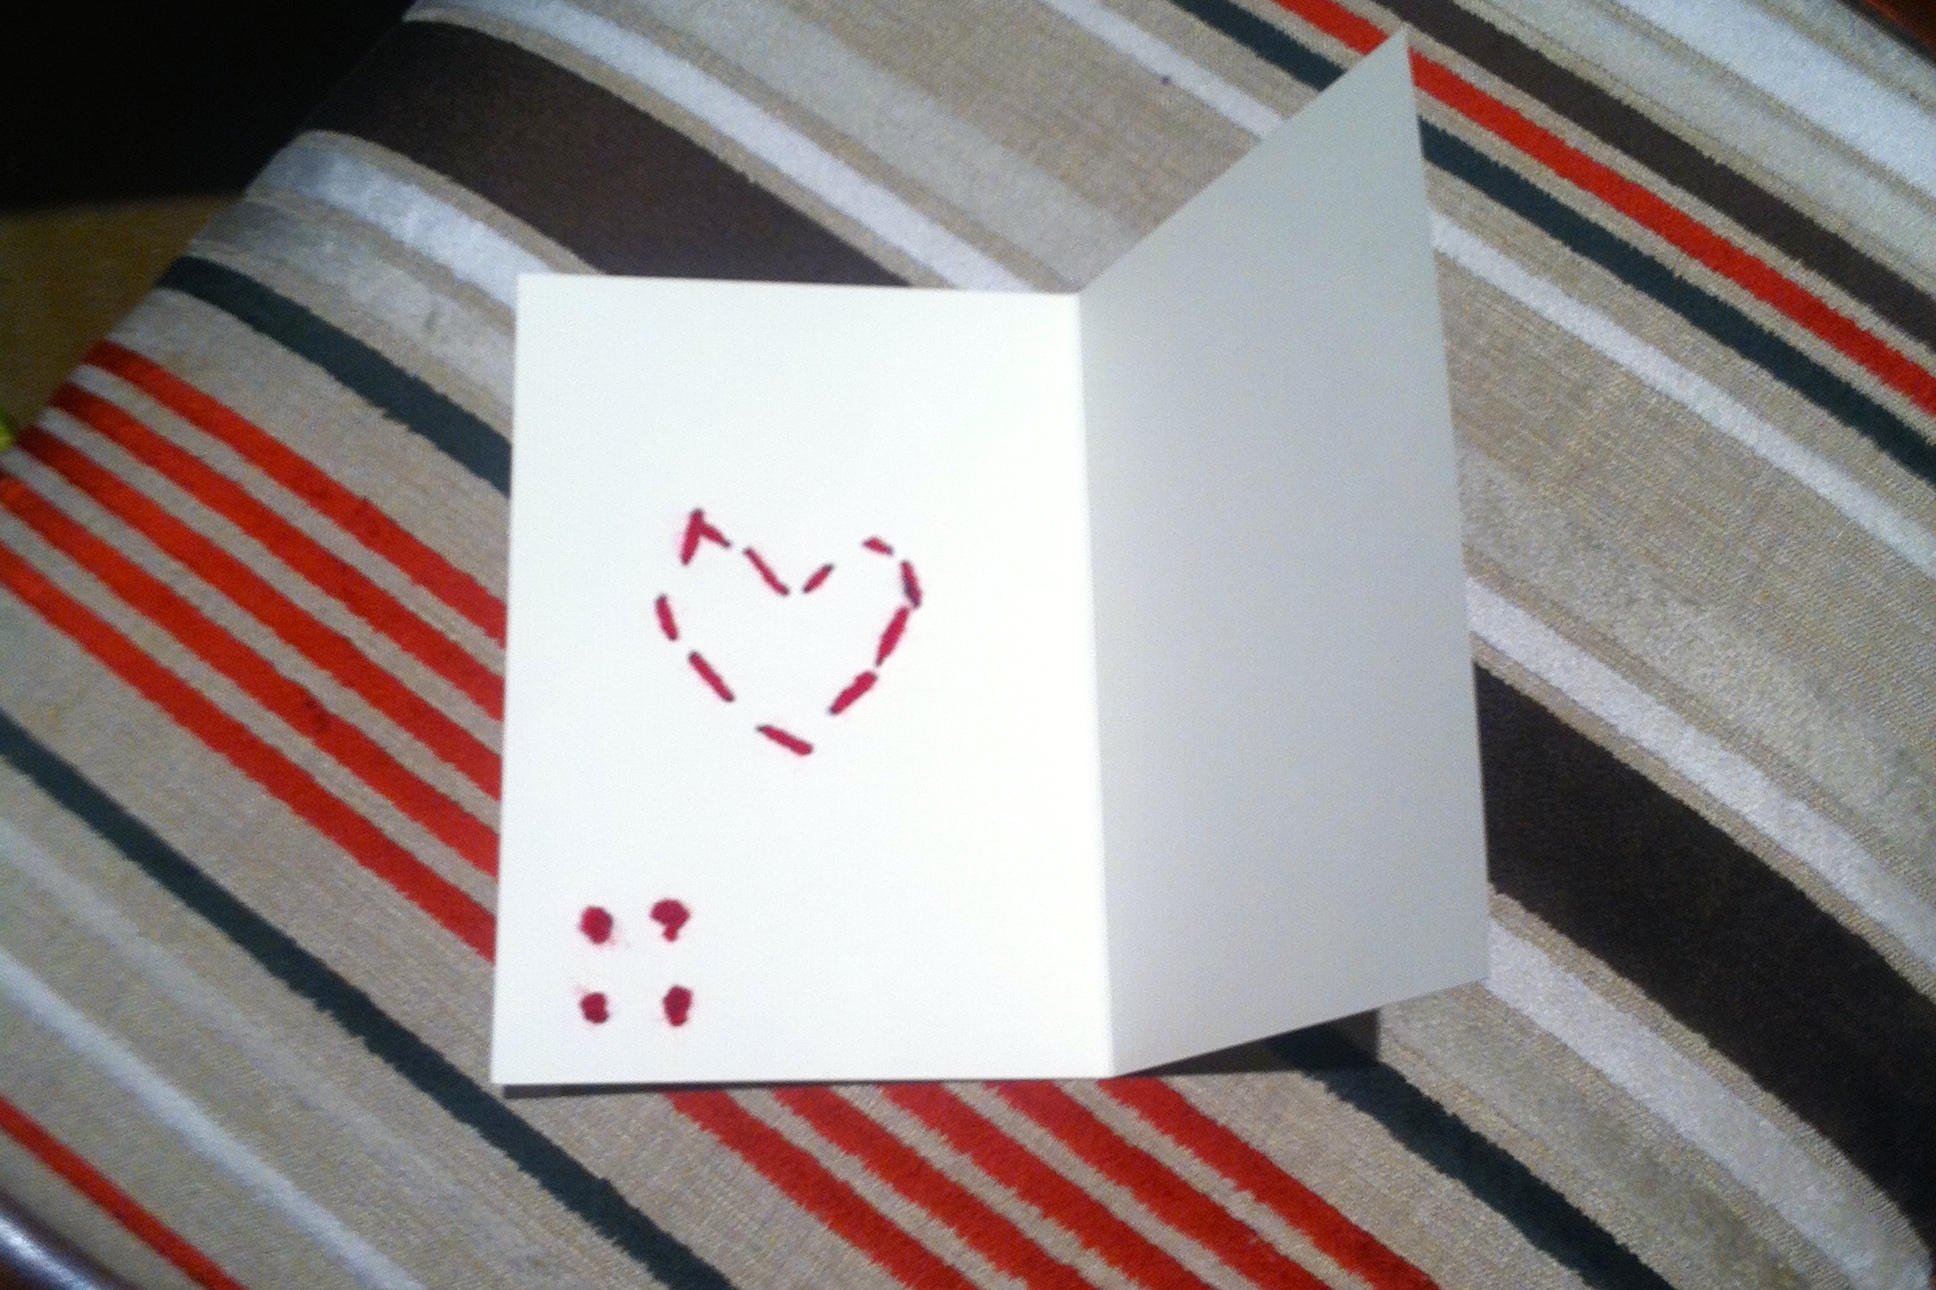 I like the detail of the running stitch heart visible on the inside of the card